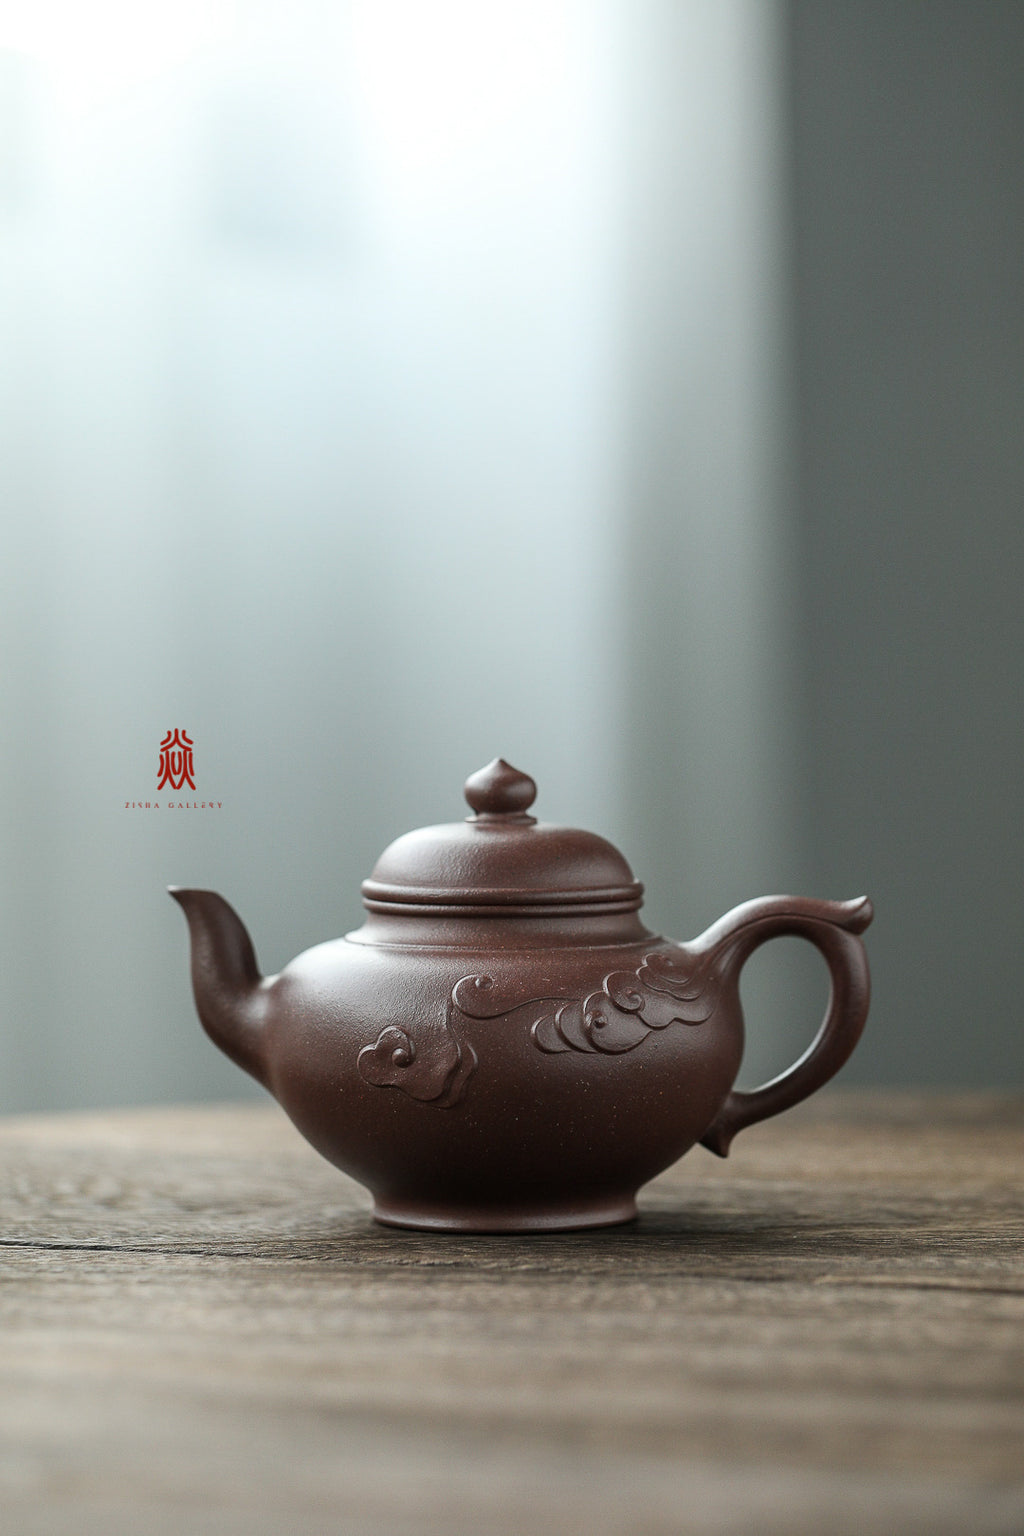 笑樱 Xiao Ying 许息根 Xu Xi Gen 250ml Di Cao Qing 底槽清 zini - The Phans Yixing Zisha Teapot